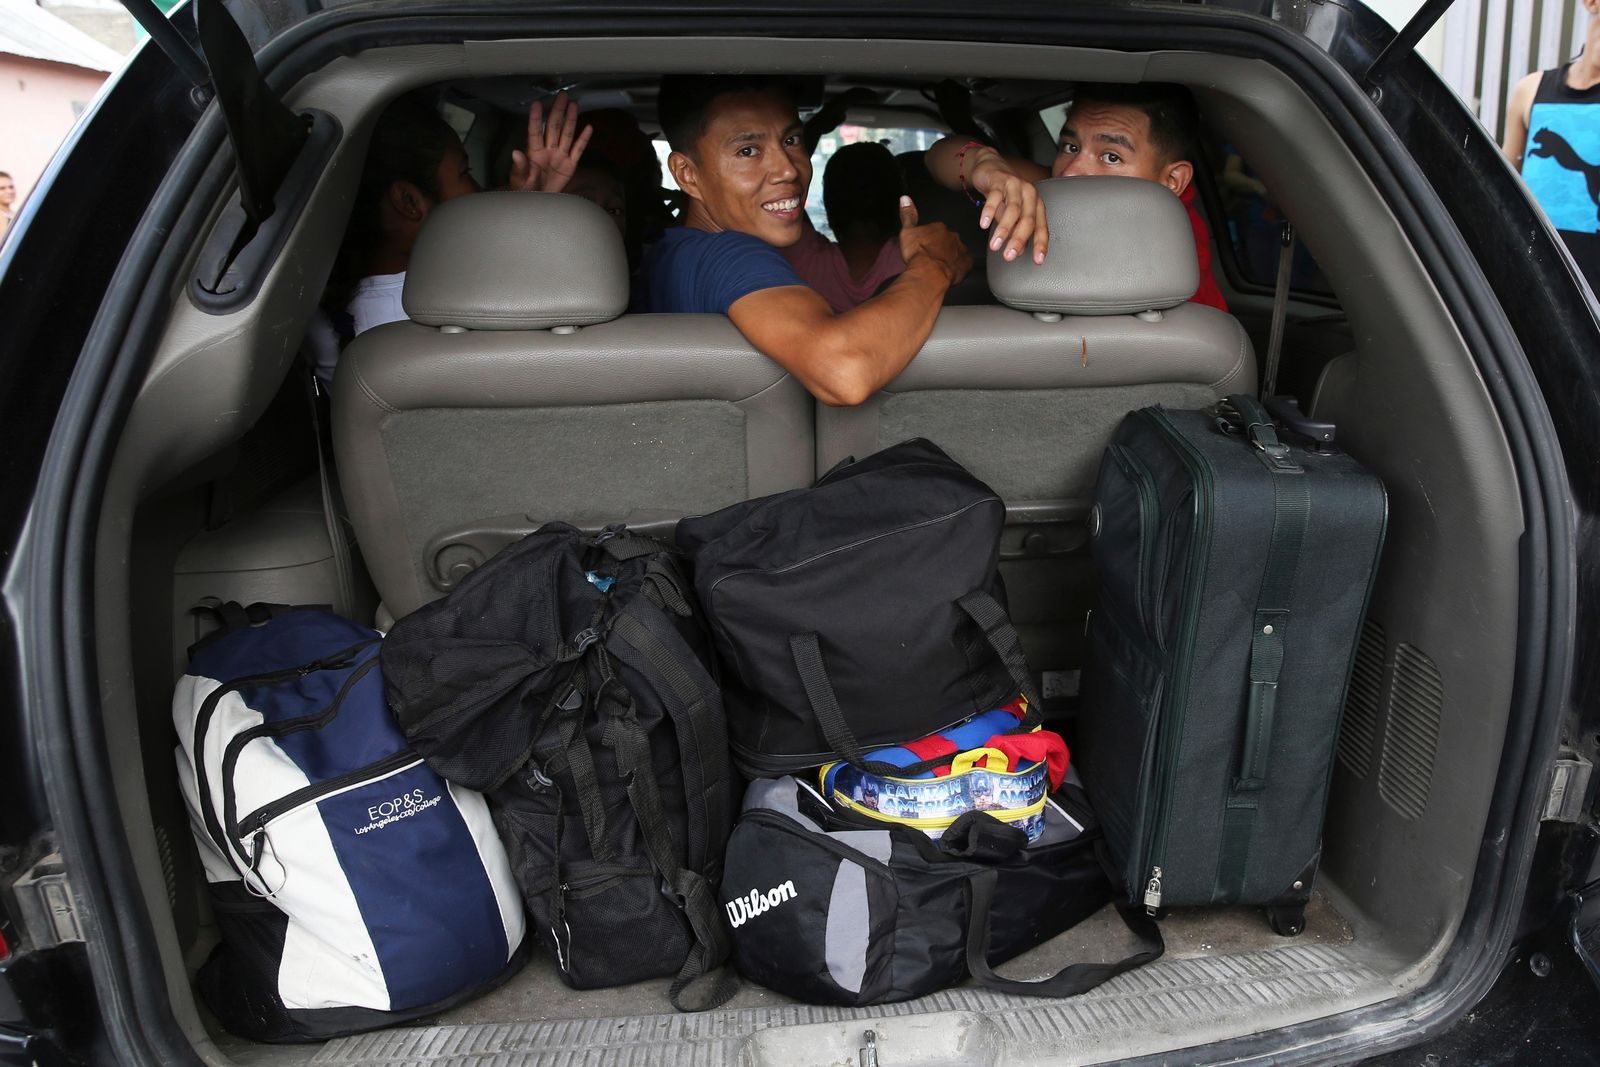 Migrants who where lodging at the AMAR migrant shelter get ready for a trip to the border in the Pastor's vehicle, to apply for asylum in the United States side, from Nuevo Laredo, Mexico, Wednesday, July 17, 2019. Asylum-seekers grappled to understand what a new U.S. policy that all but eliminates refugee claims by Central Americans and many others meant for their bids to find a better life in America amid a chaos of rumors, confusion and fear. (AP Photo/Marco Ugarte)